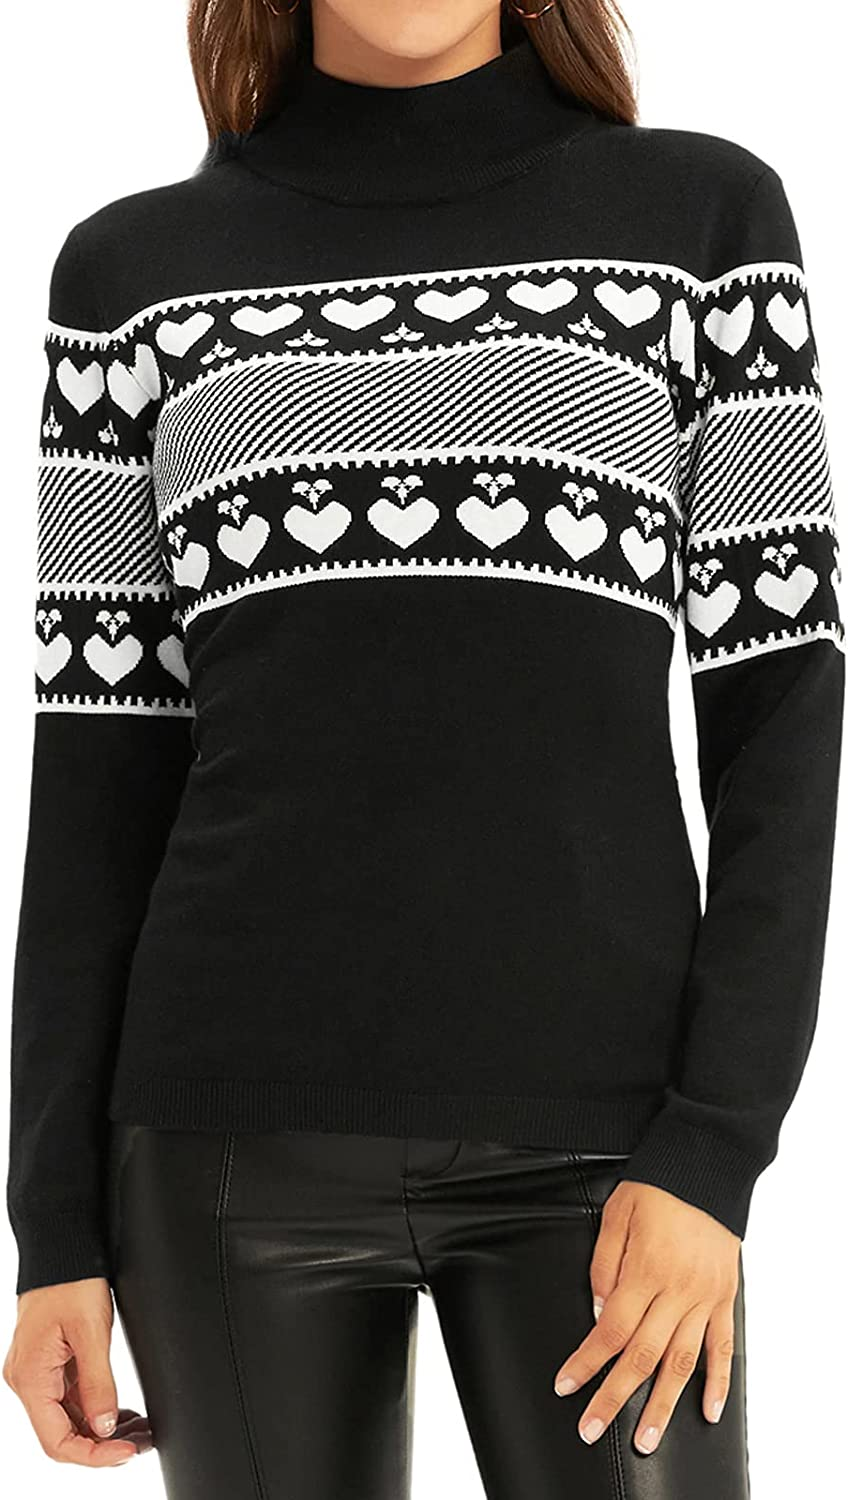 GRACE KARIN Long Sleeve High Neck Knit Sweater Lightweight Heart Printed Slim Fit Pullover Top